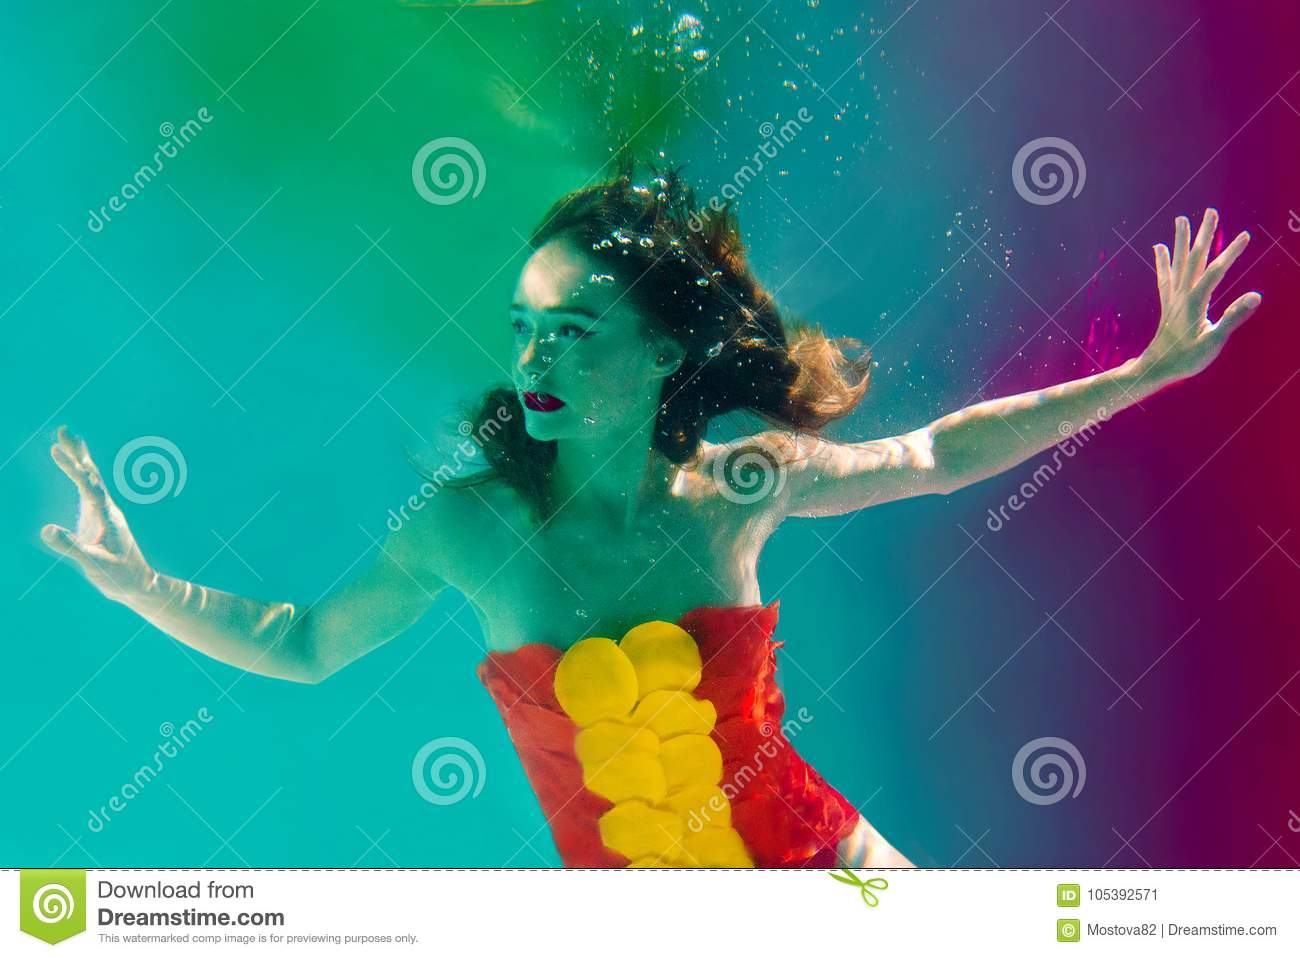 Surreal portrait of young attractive woman with air bubbles underwater in colorful water with ink